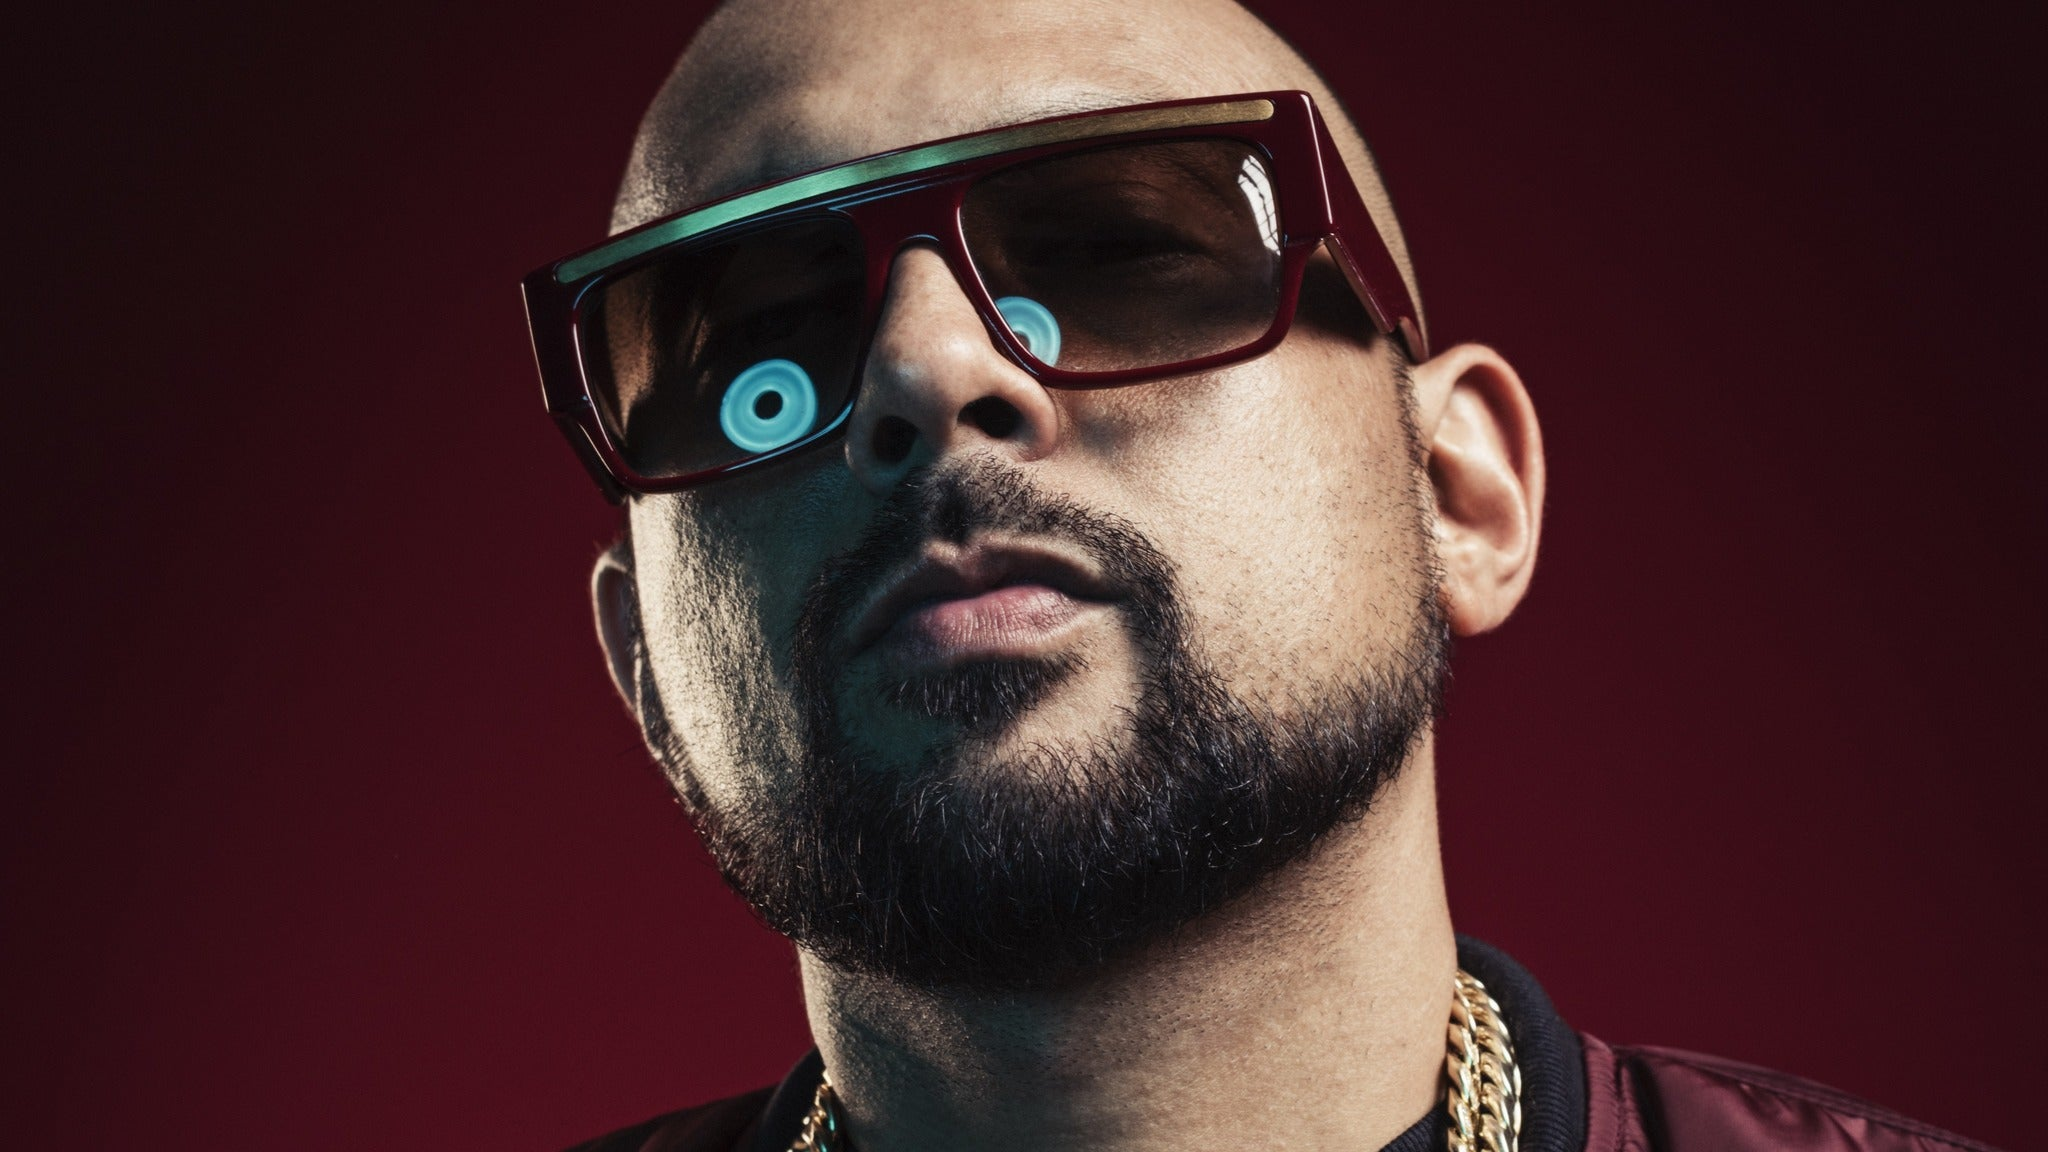 Sean Paul at The Fox Theater at Foxwoods Resort Casino - Mashantucket, CT 06355